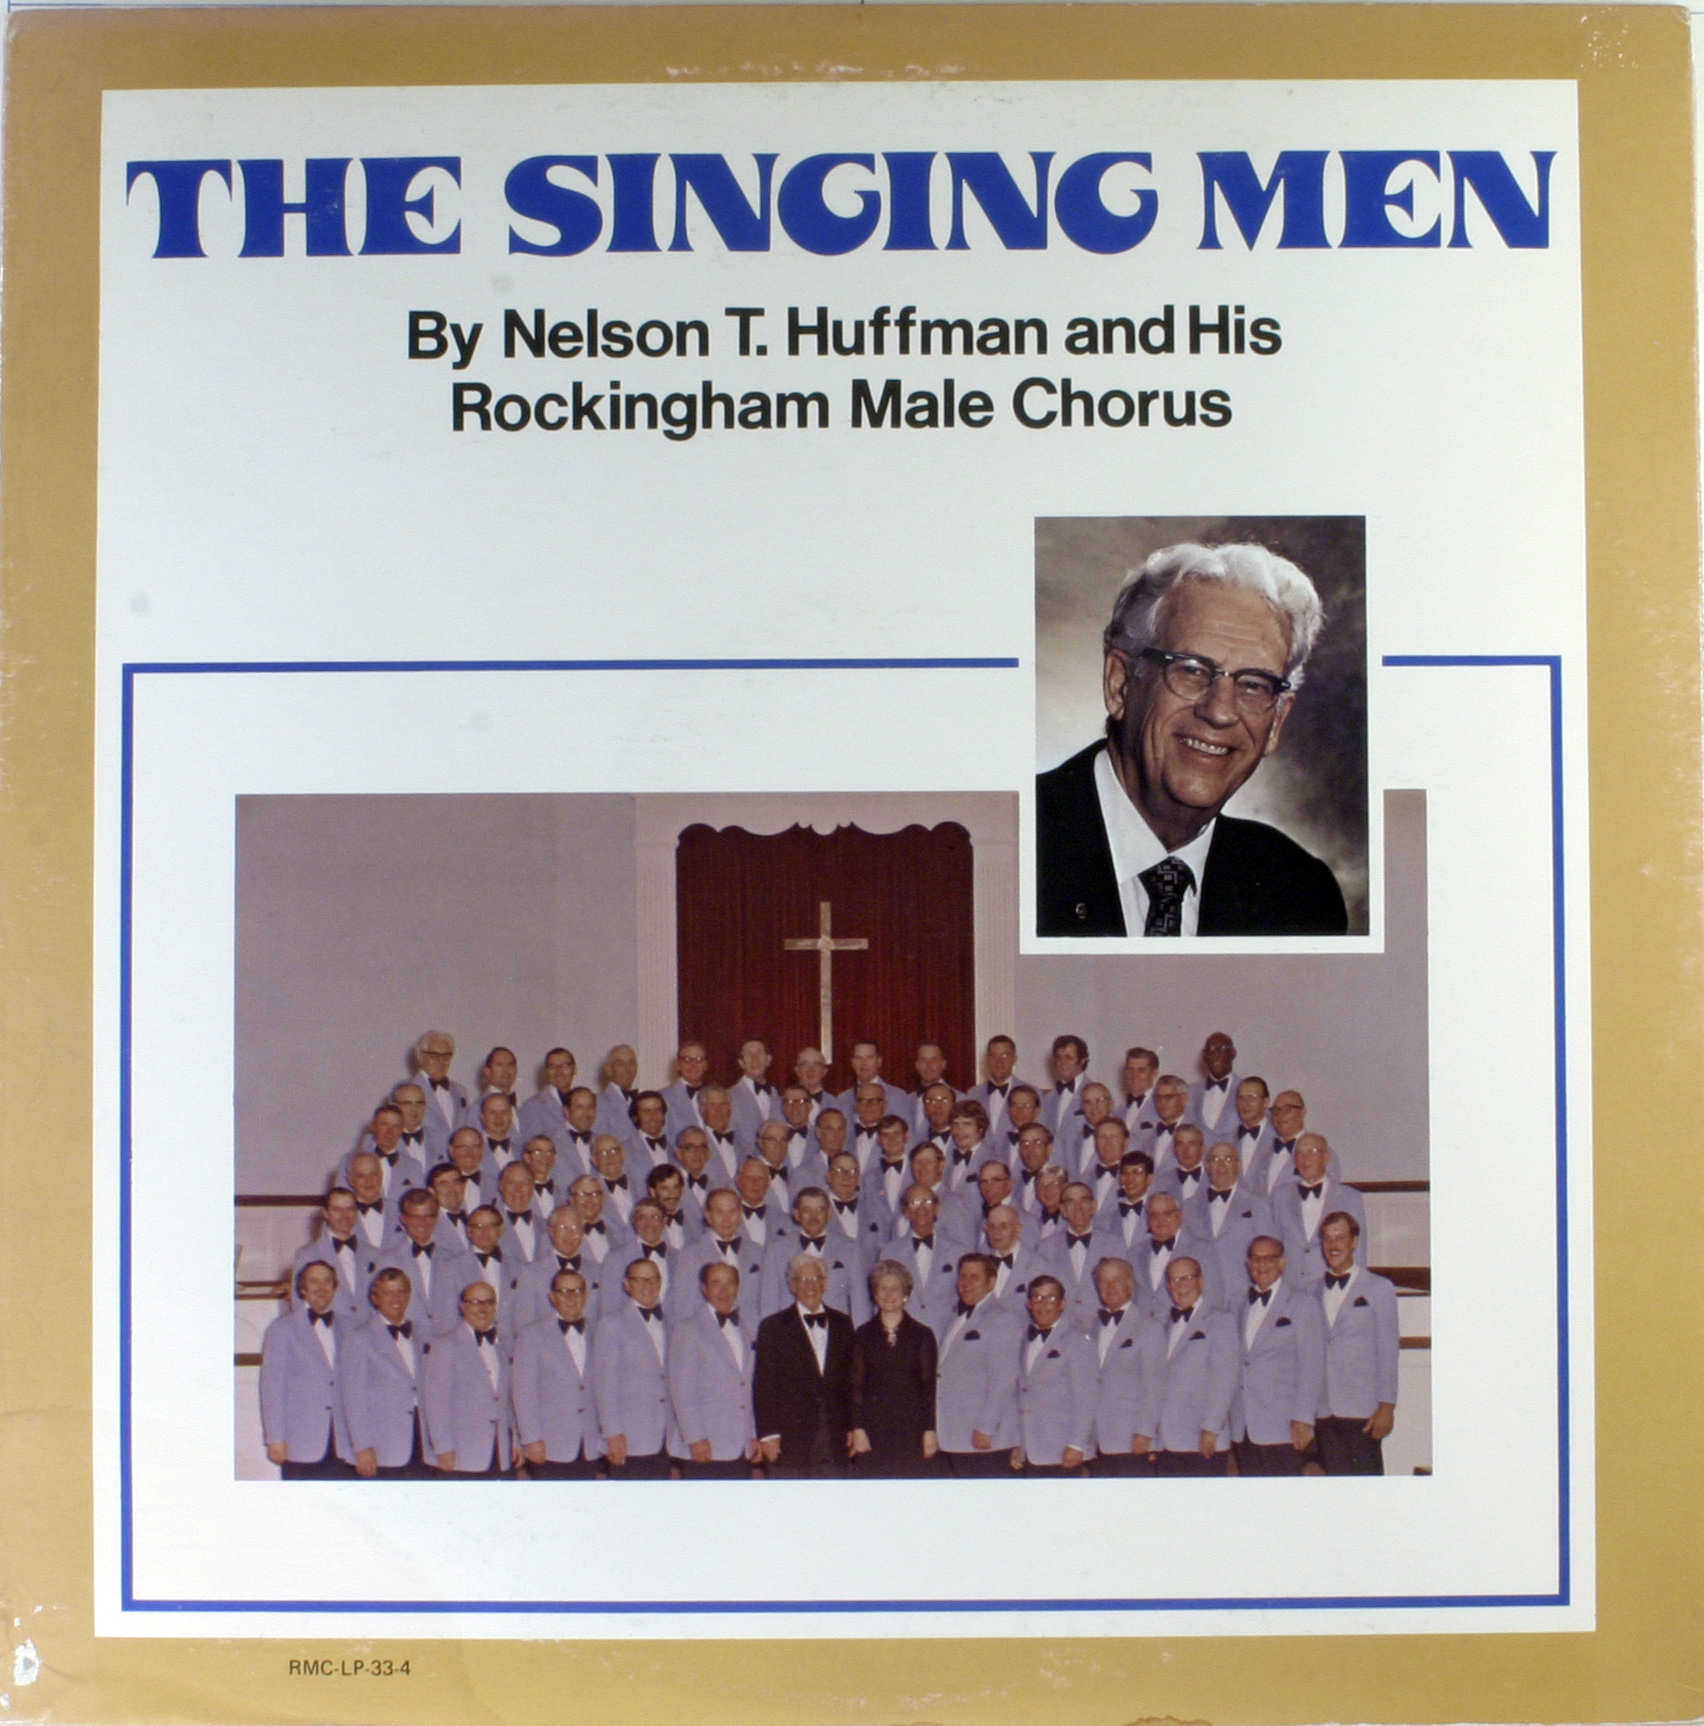 The Singing Men